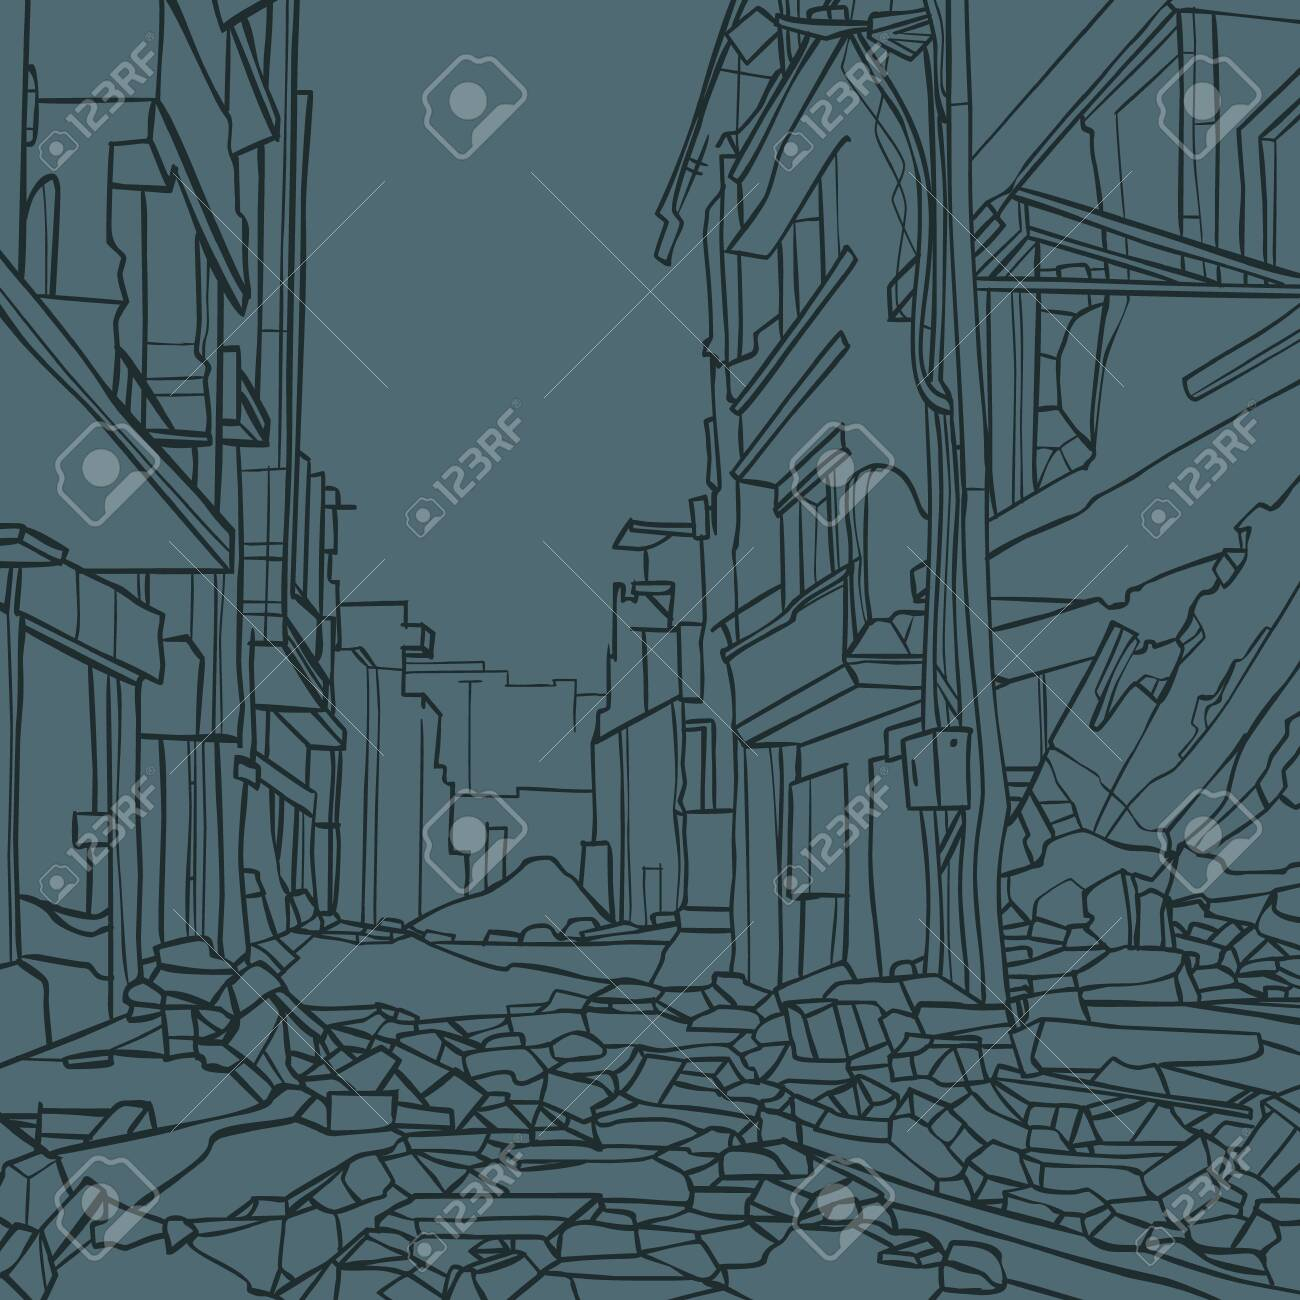 contour drawing of city street with dilapidated houses in ruins - 146965319